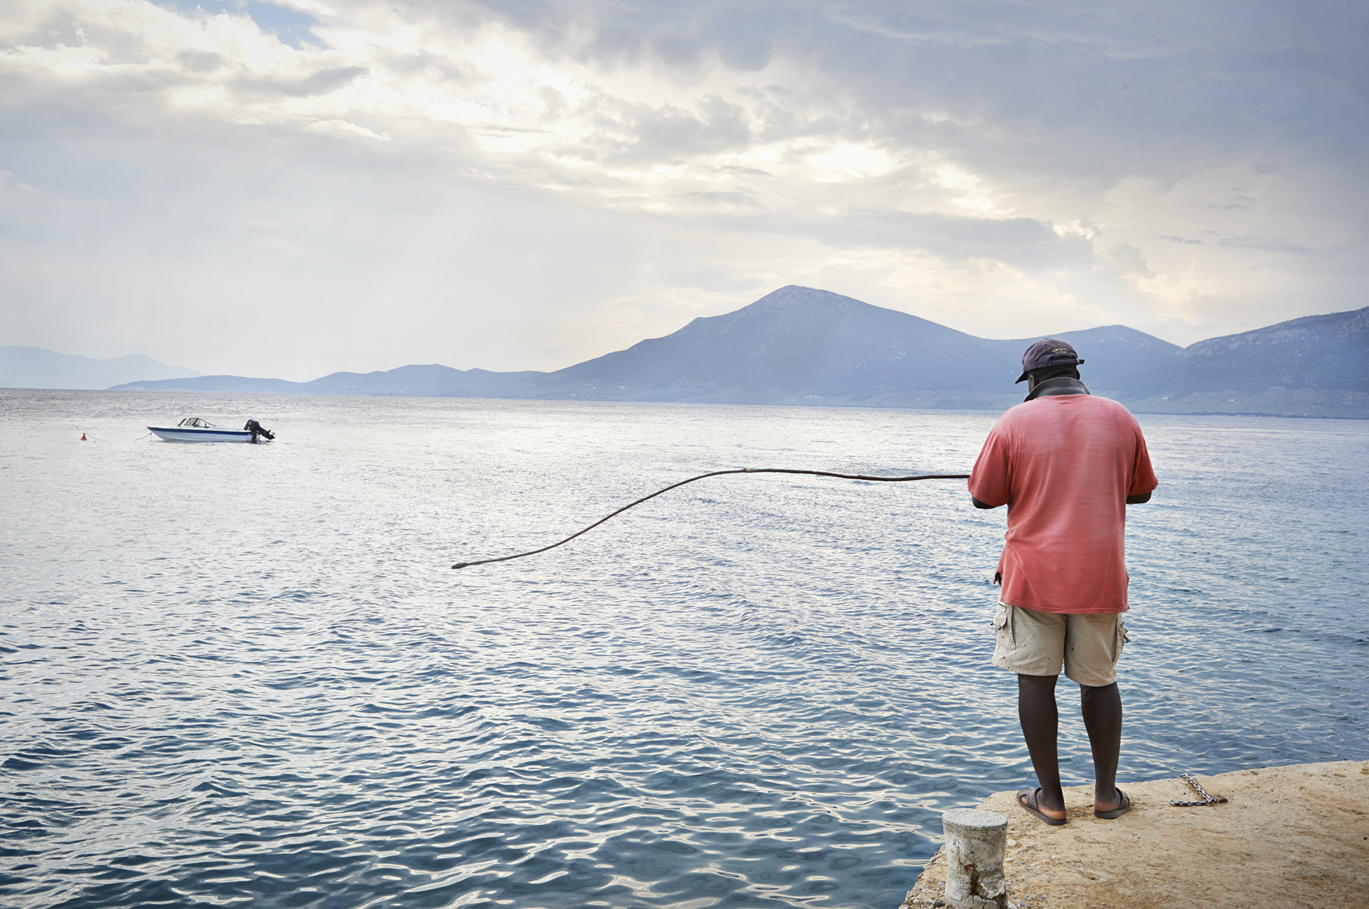 Ernest the island's caretaker fishing with a homemade rod.